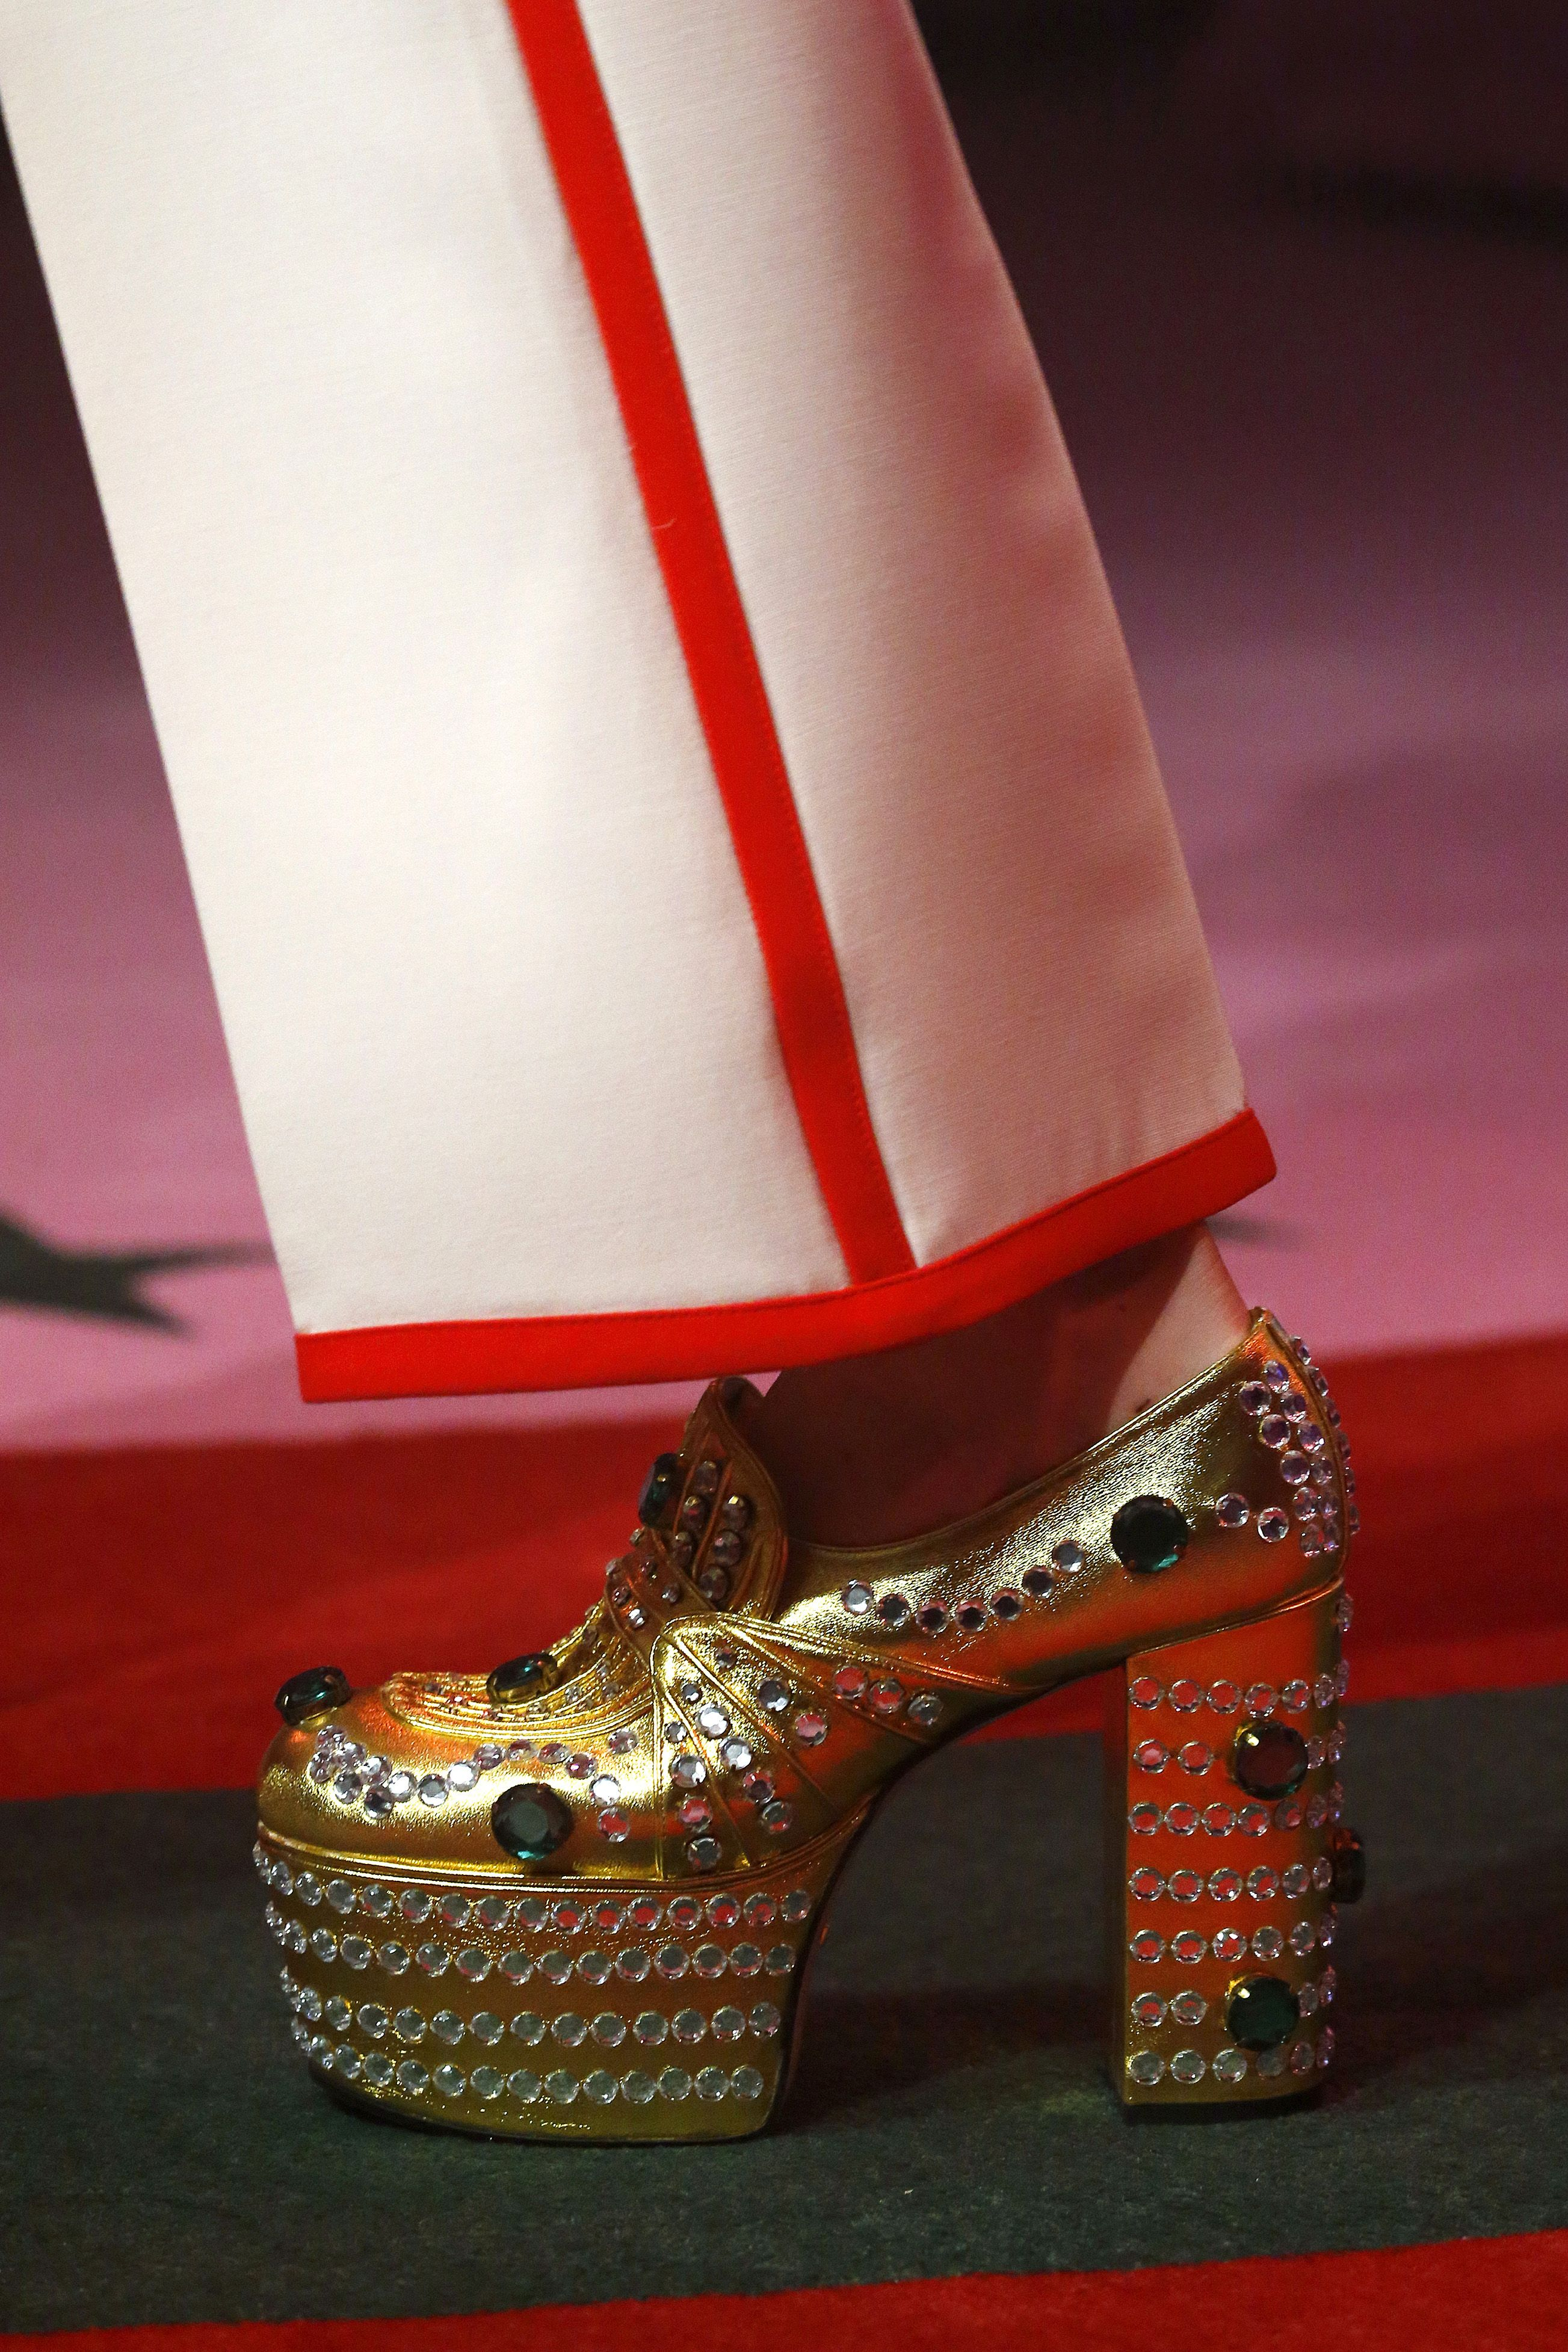 gucci 2017 shoes. spring 2017 shoe trends straight from the runway - best and summer shoes gucci